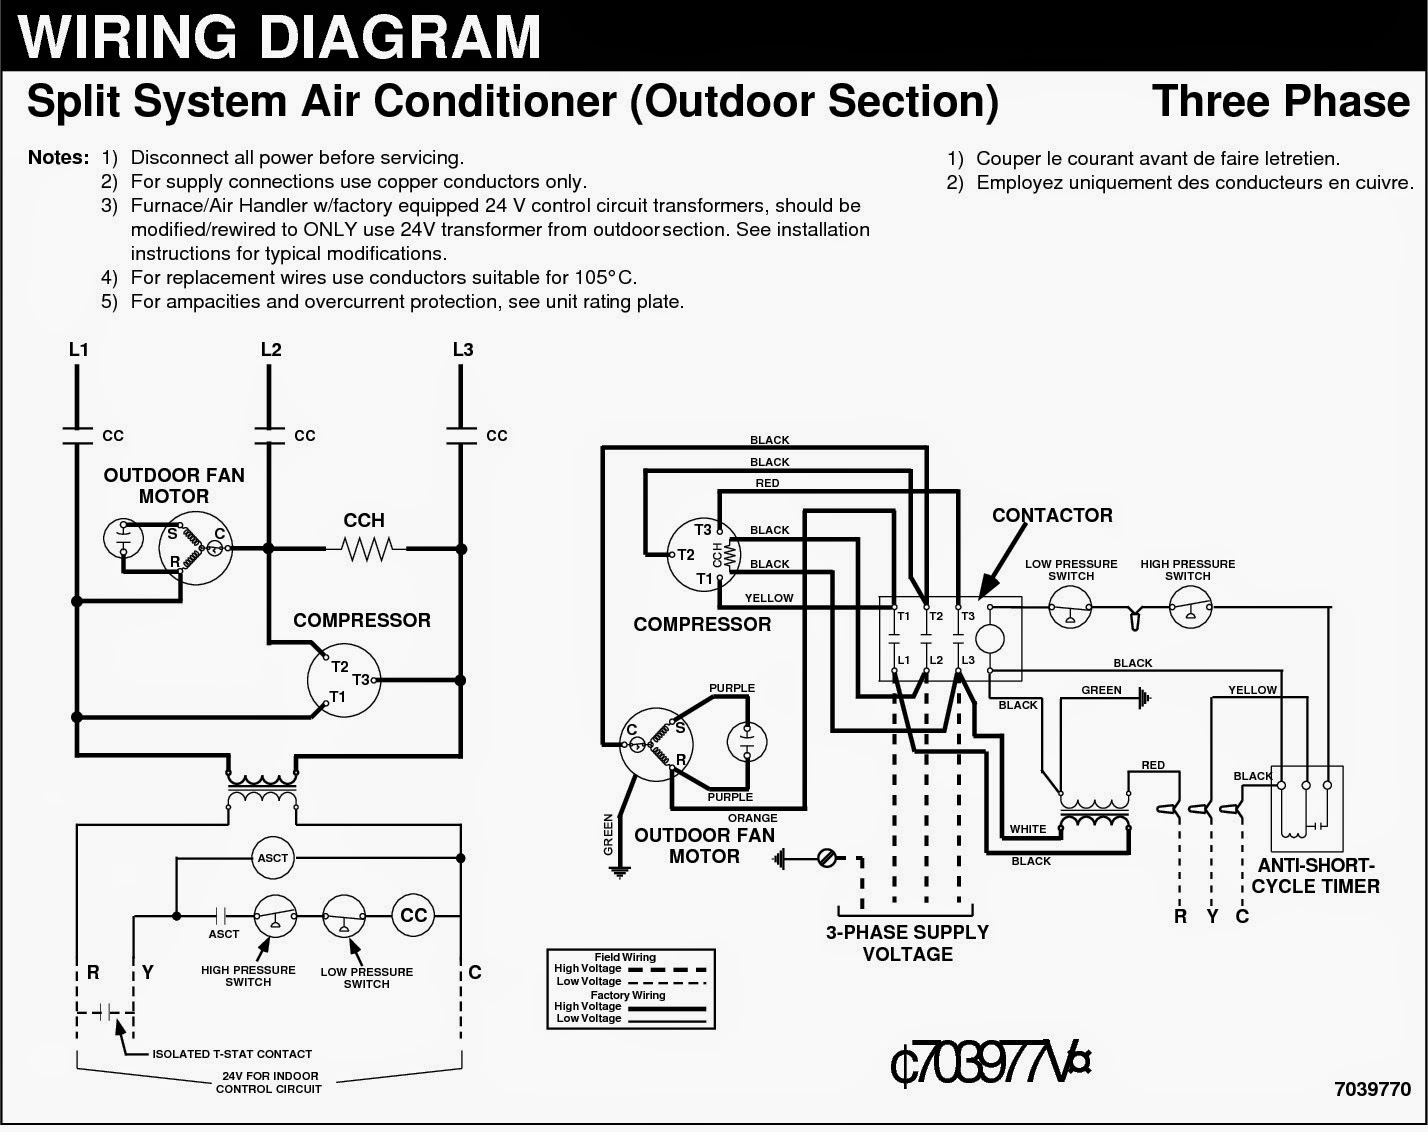 3+phase electrical wiring diagrams for air conditioning systems part two 3 phase air compressor motor starter wiring diagram at bakdesigns.co